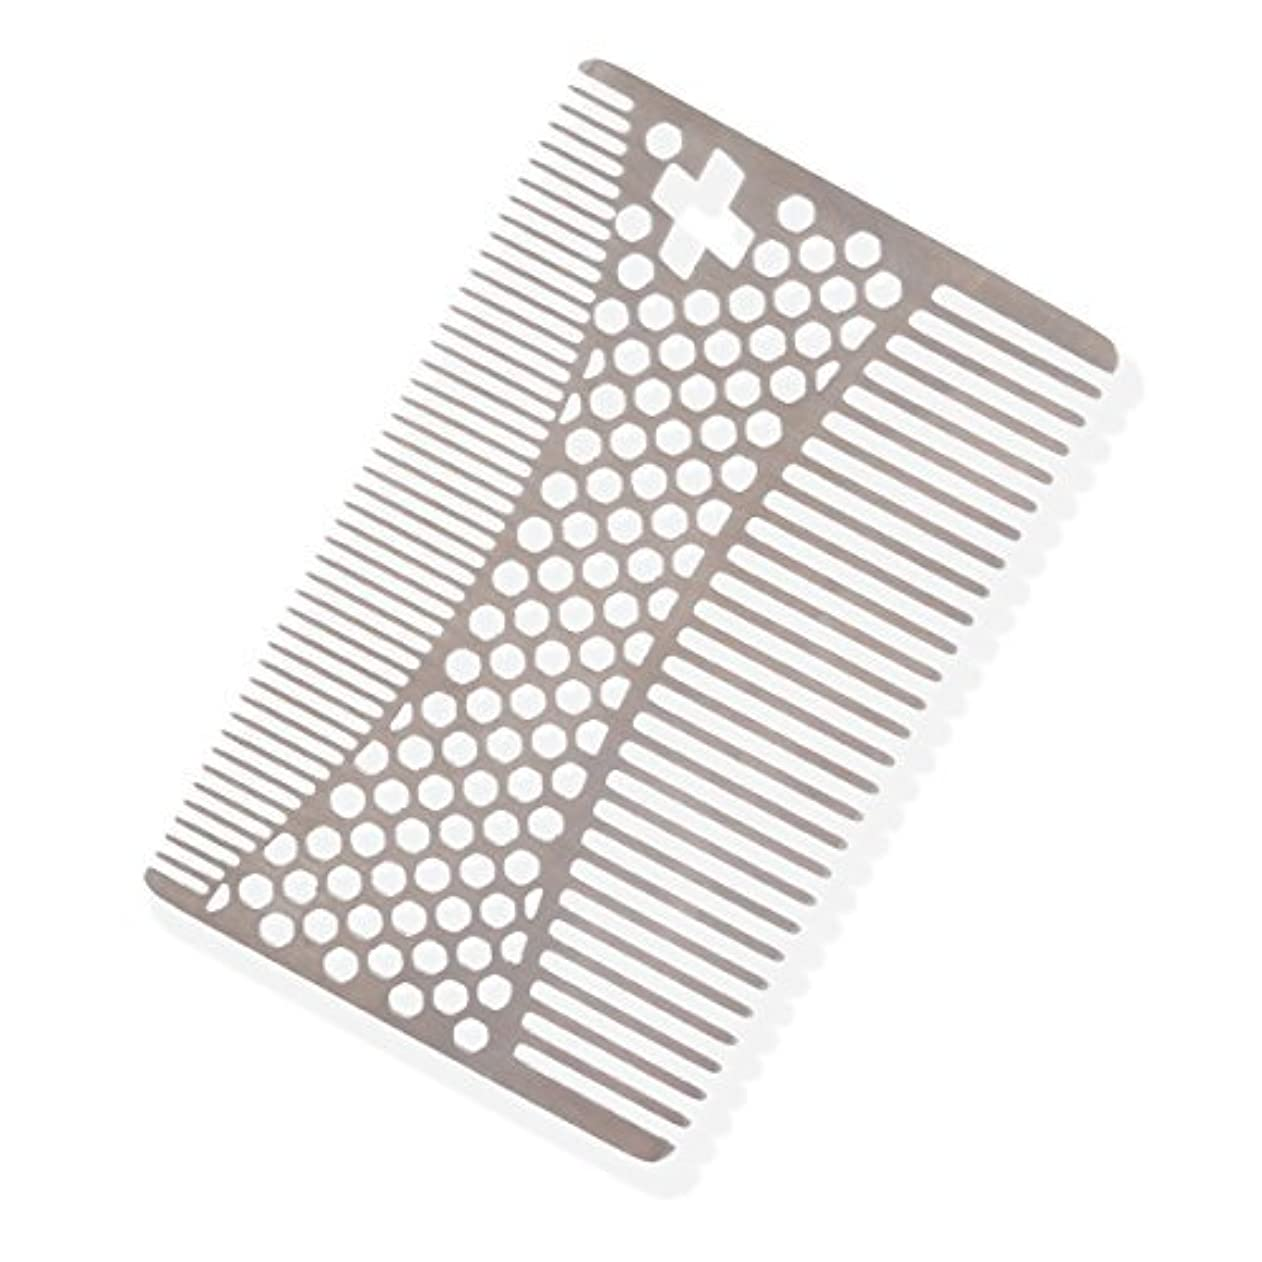 星心配失業者SHARPSWISS Credit Card Pocket Men Hair and Beard Comb Short - Stainless Steel [並行輸入品]